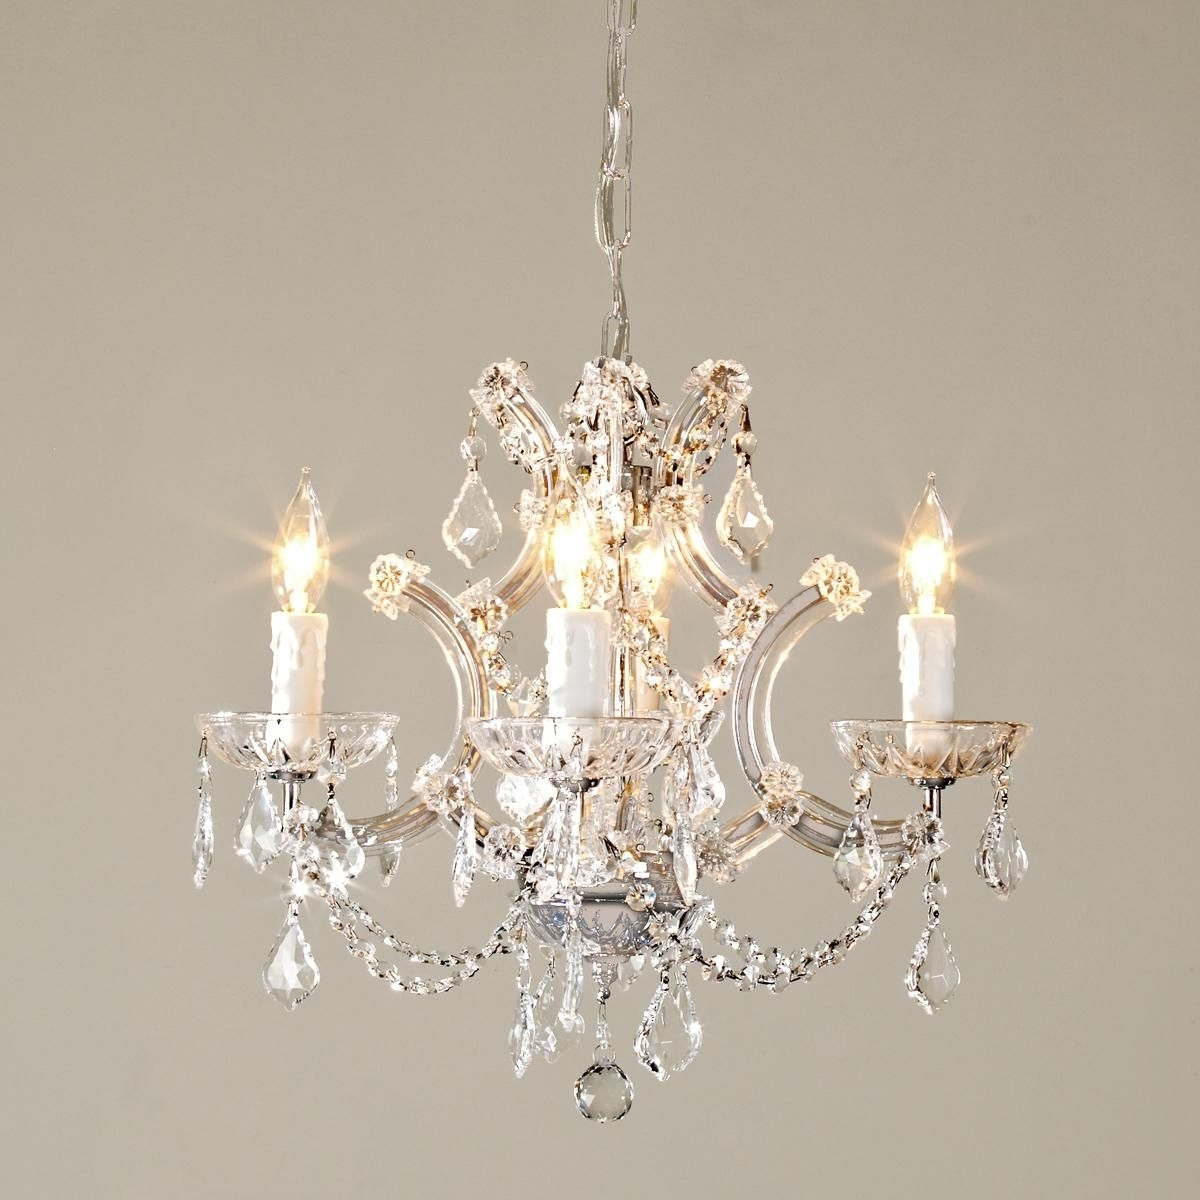 Widely Used Short Chandelier Lights With Round Crystal Chandelier (View 15 of 15)